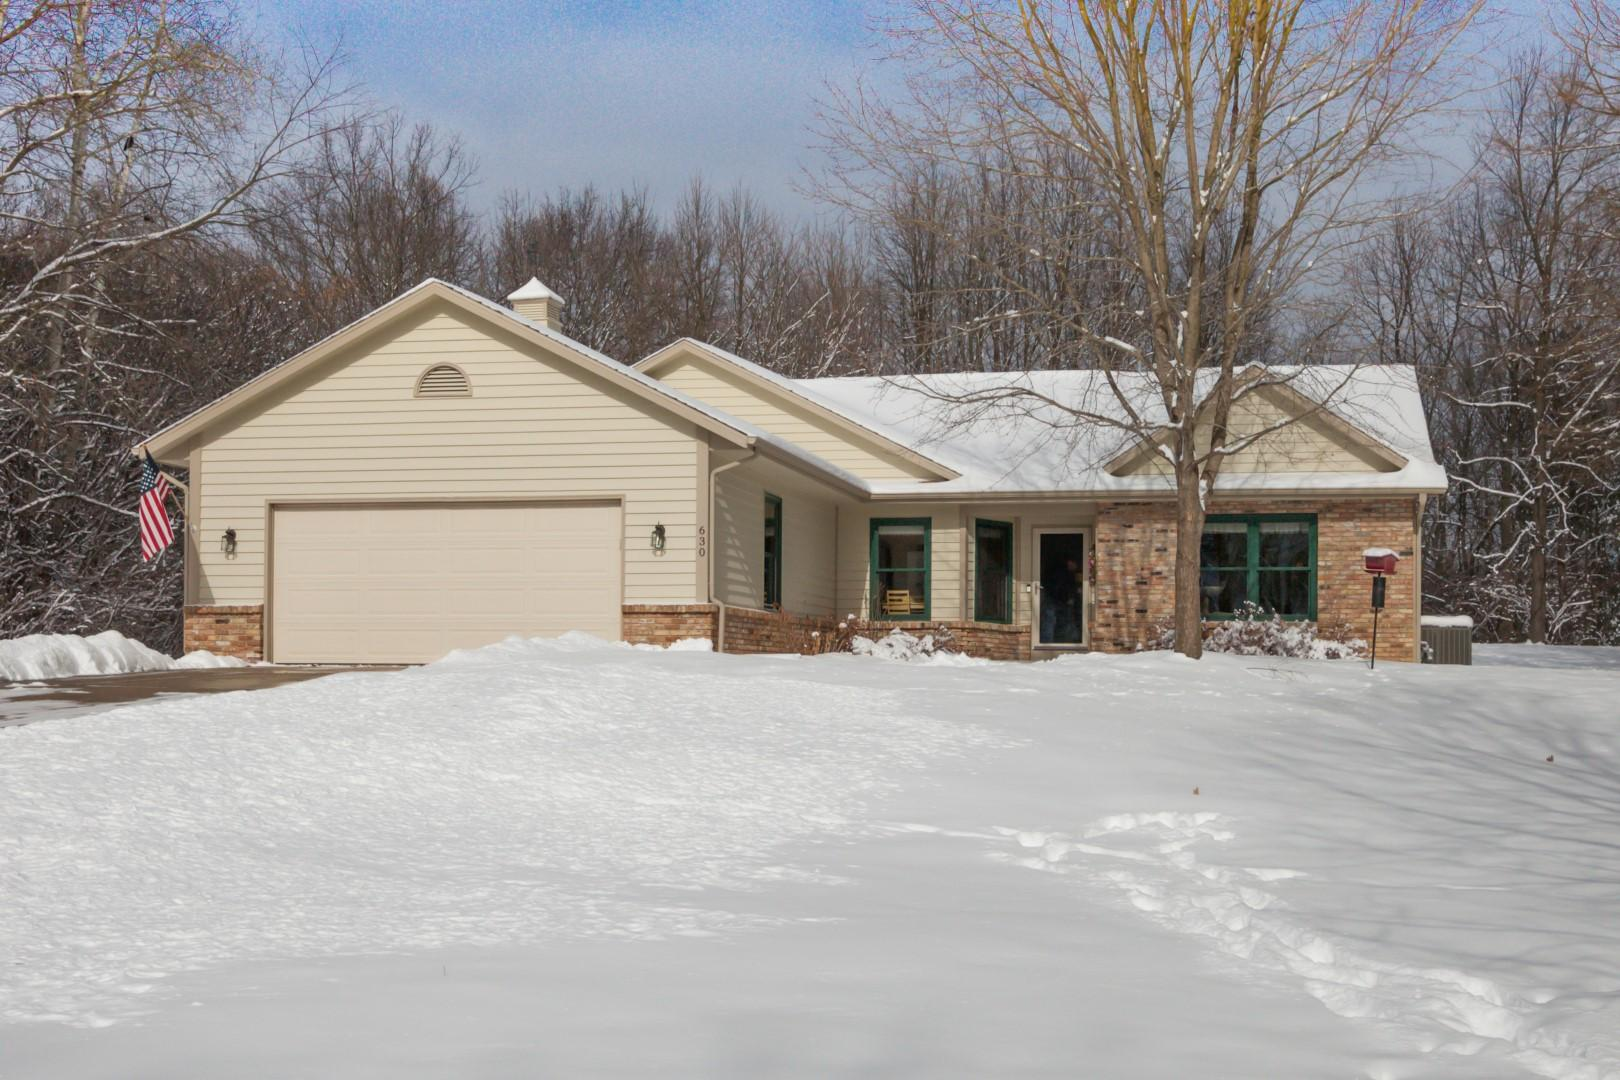 630 Cardiff Dr, Hartland, Wisconsin 53029, 3 Bedrooms Bedrooms, 7 Rooms Rooms,2 BathroomsBathrooms,Single-Family,For Sale,Cardiff Dr,1676963